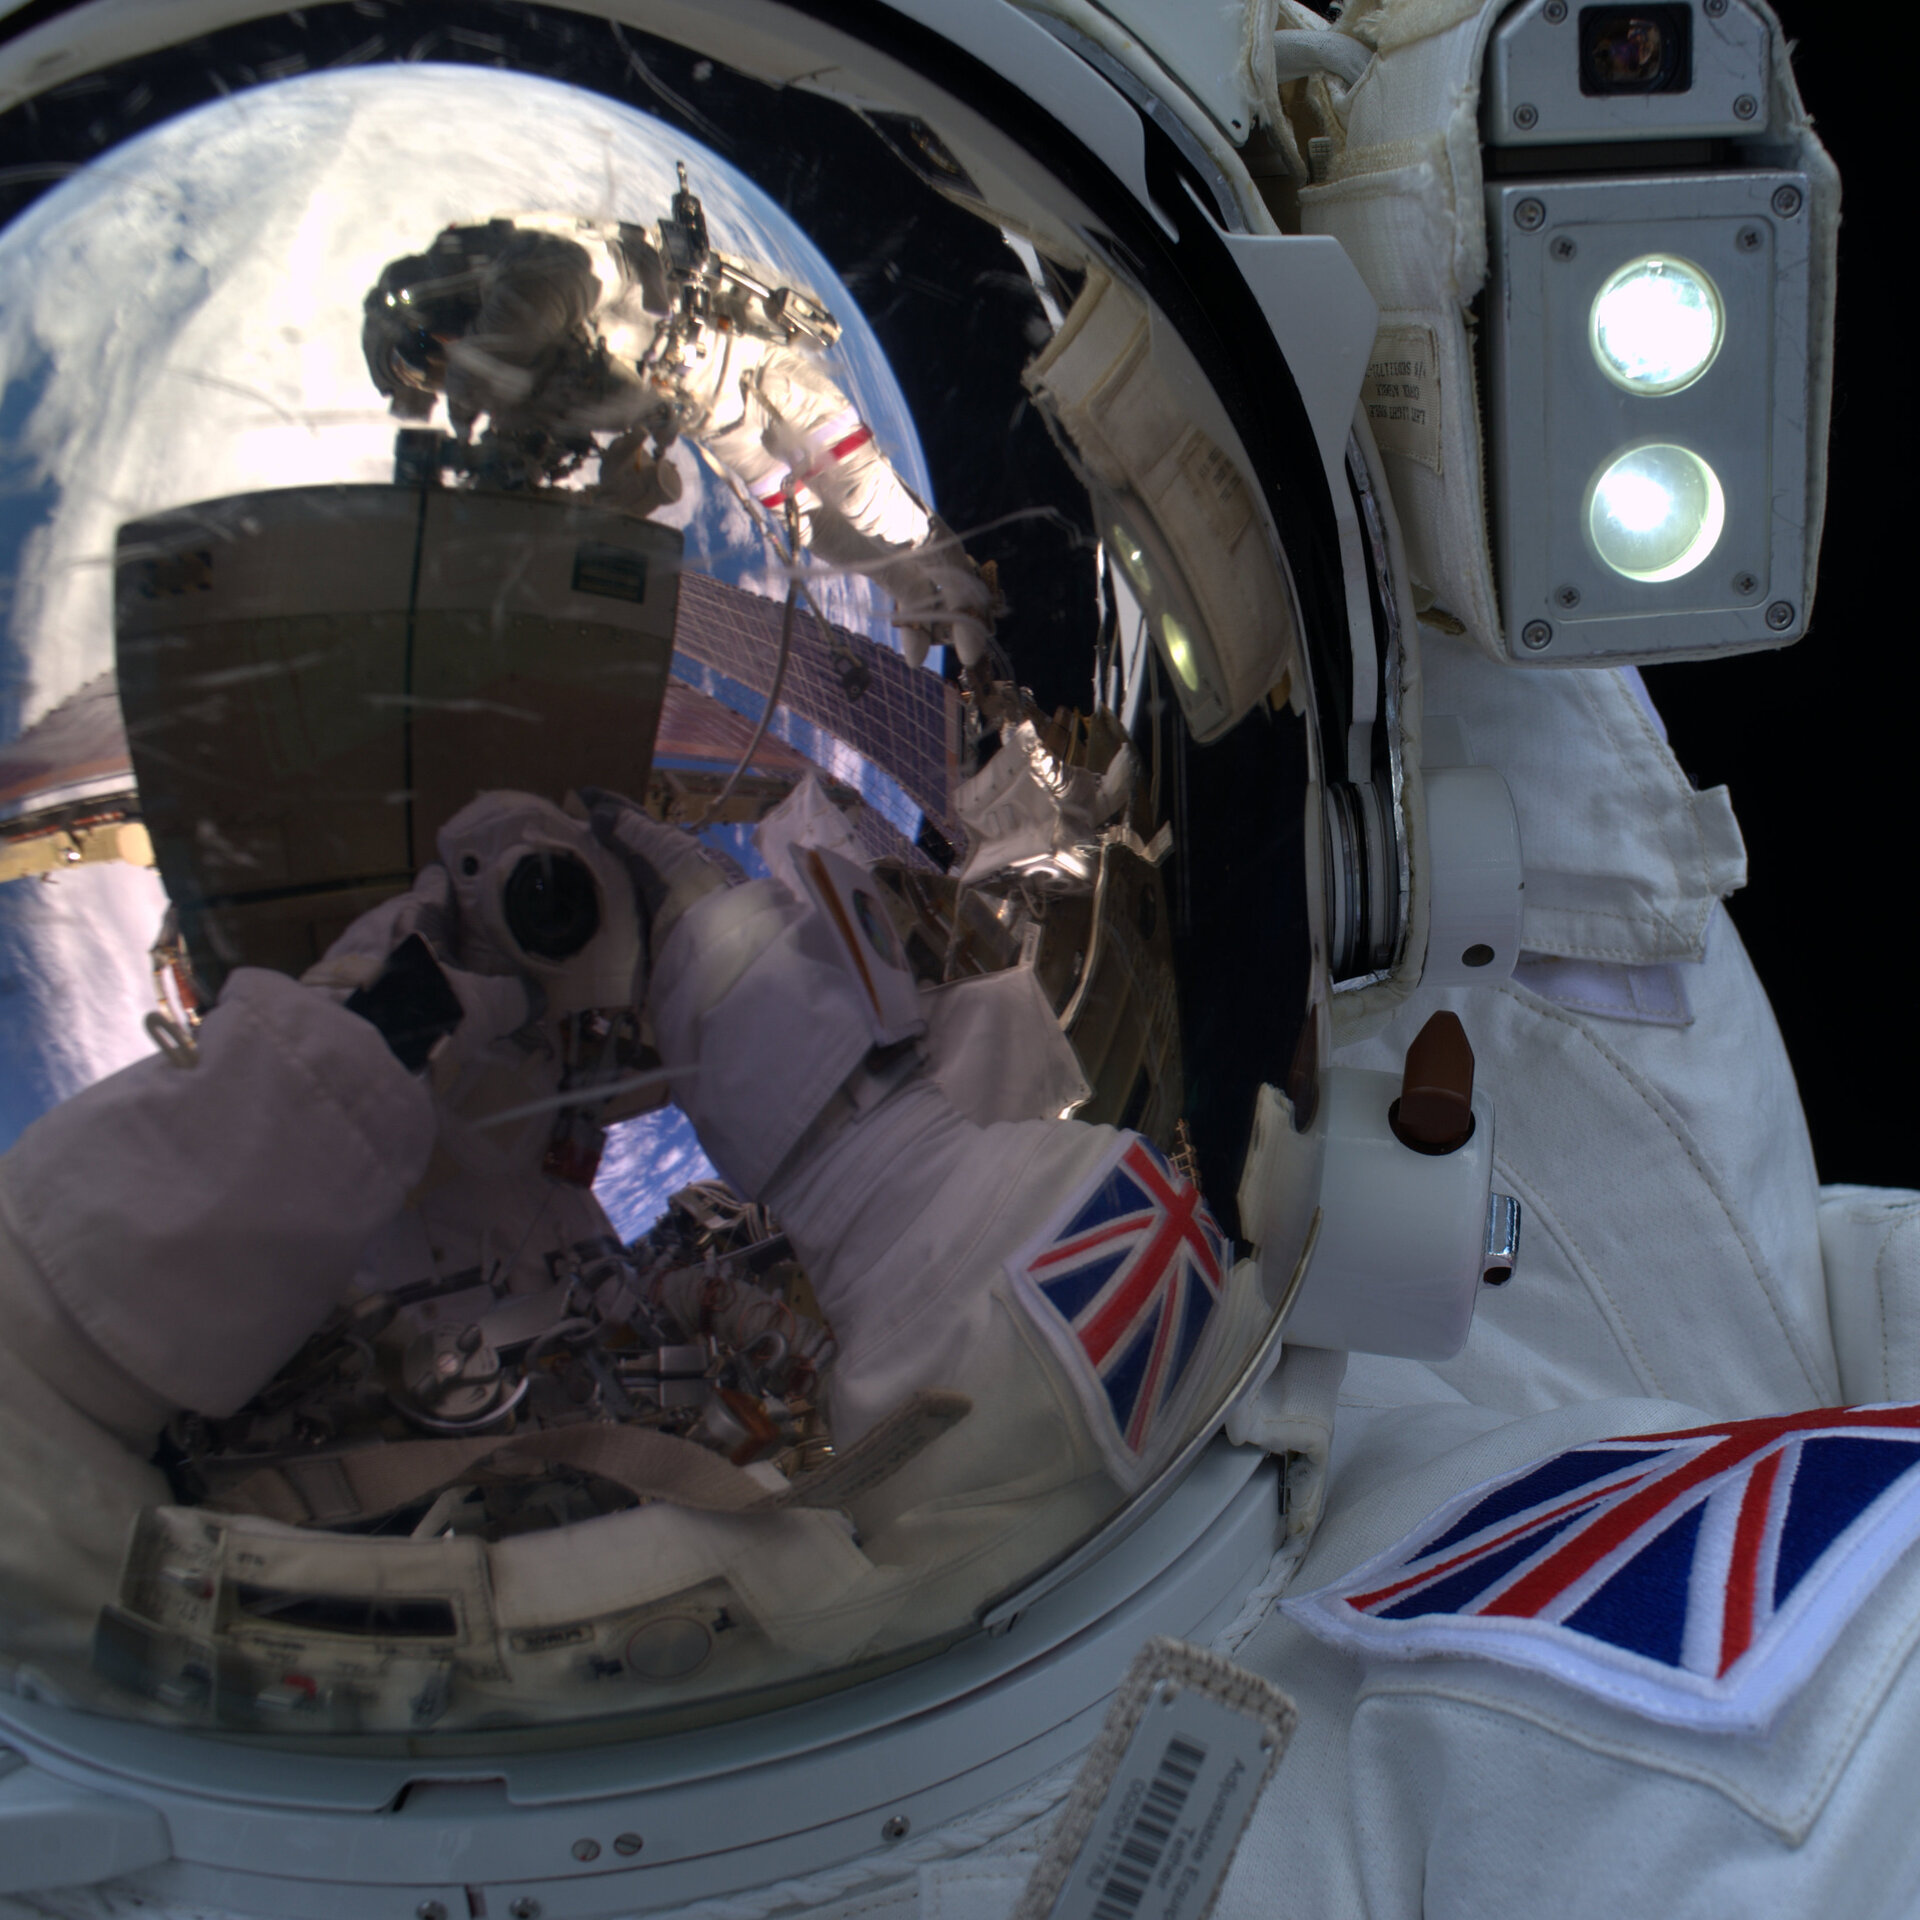 Tim's spacewalk selfie